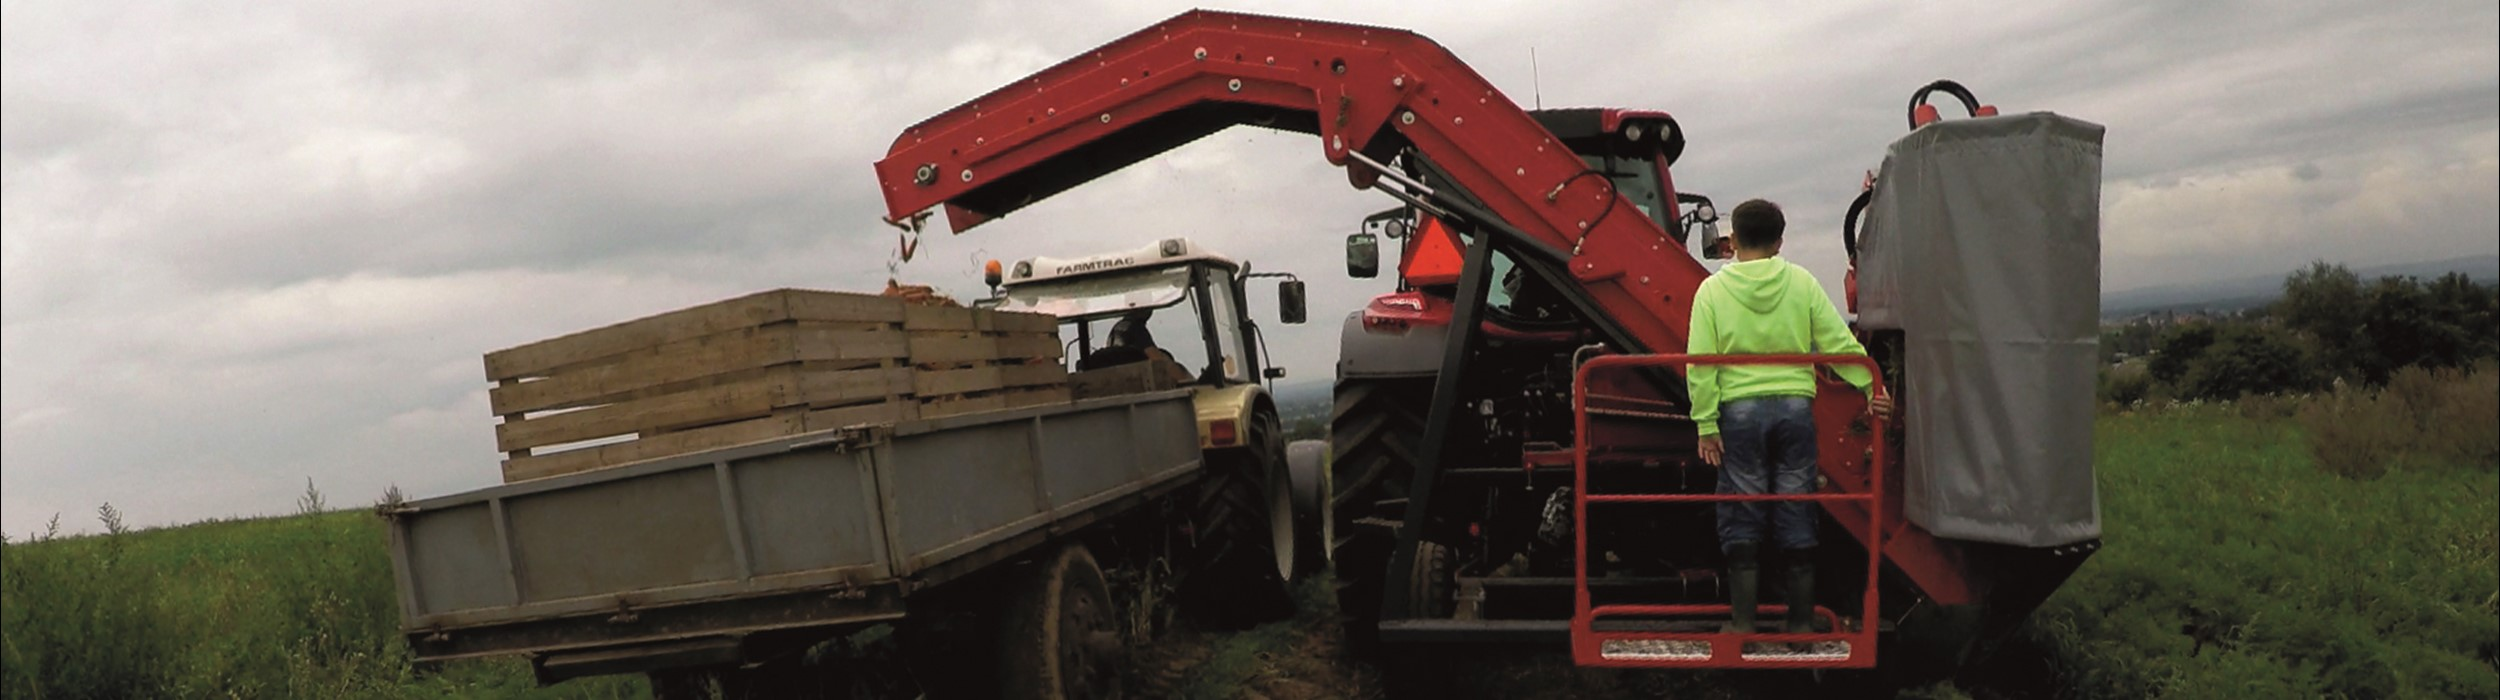 Mounted 1-row top lifting harvester with discharge elevator